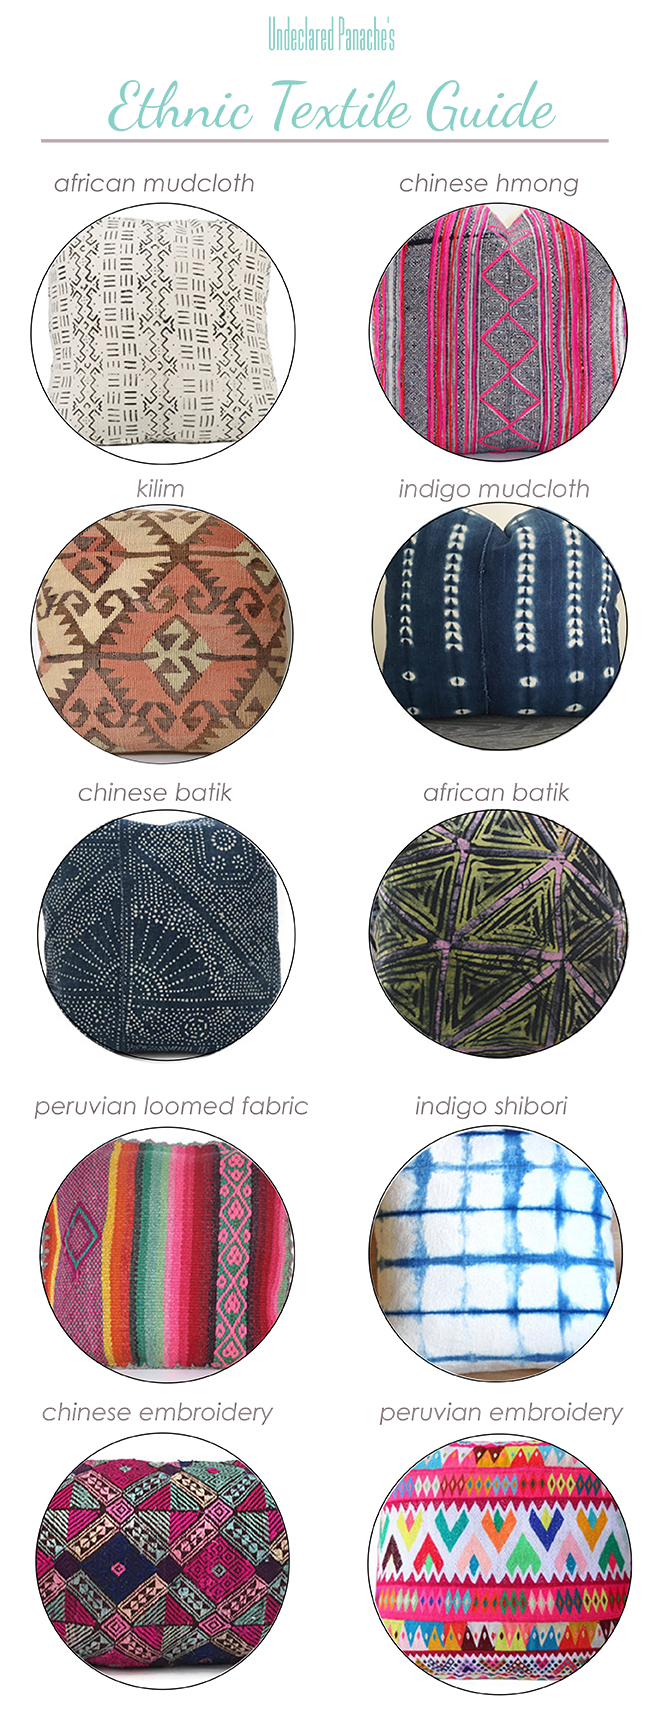 Ethnic Textile Guide